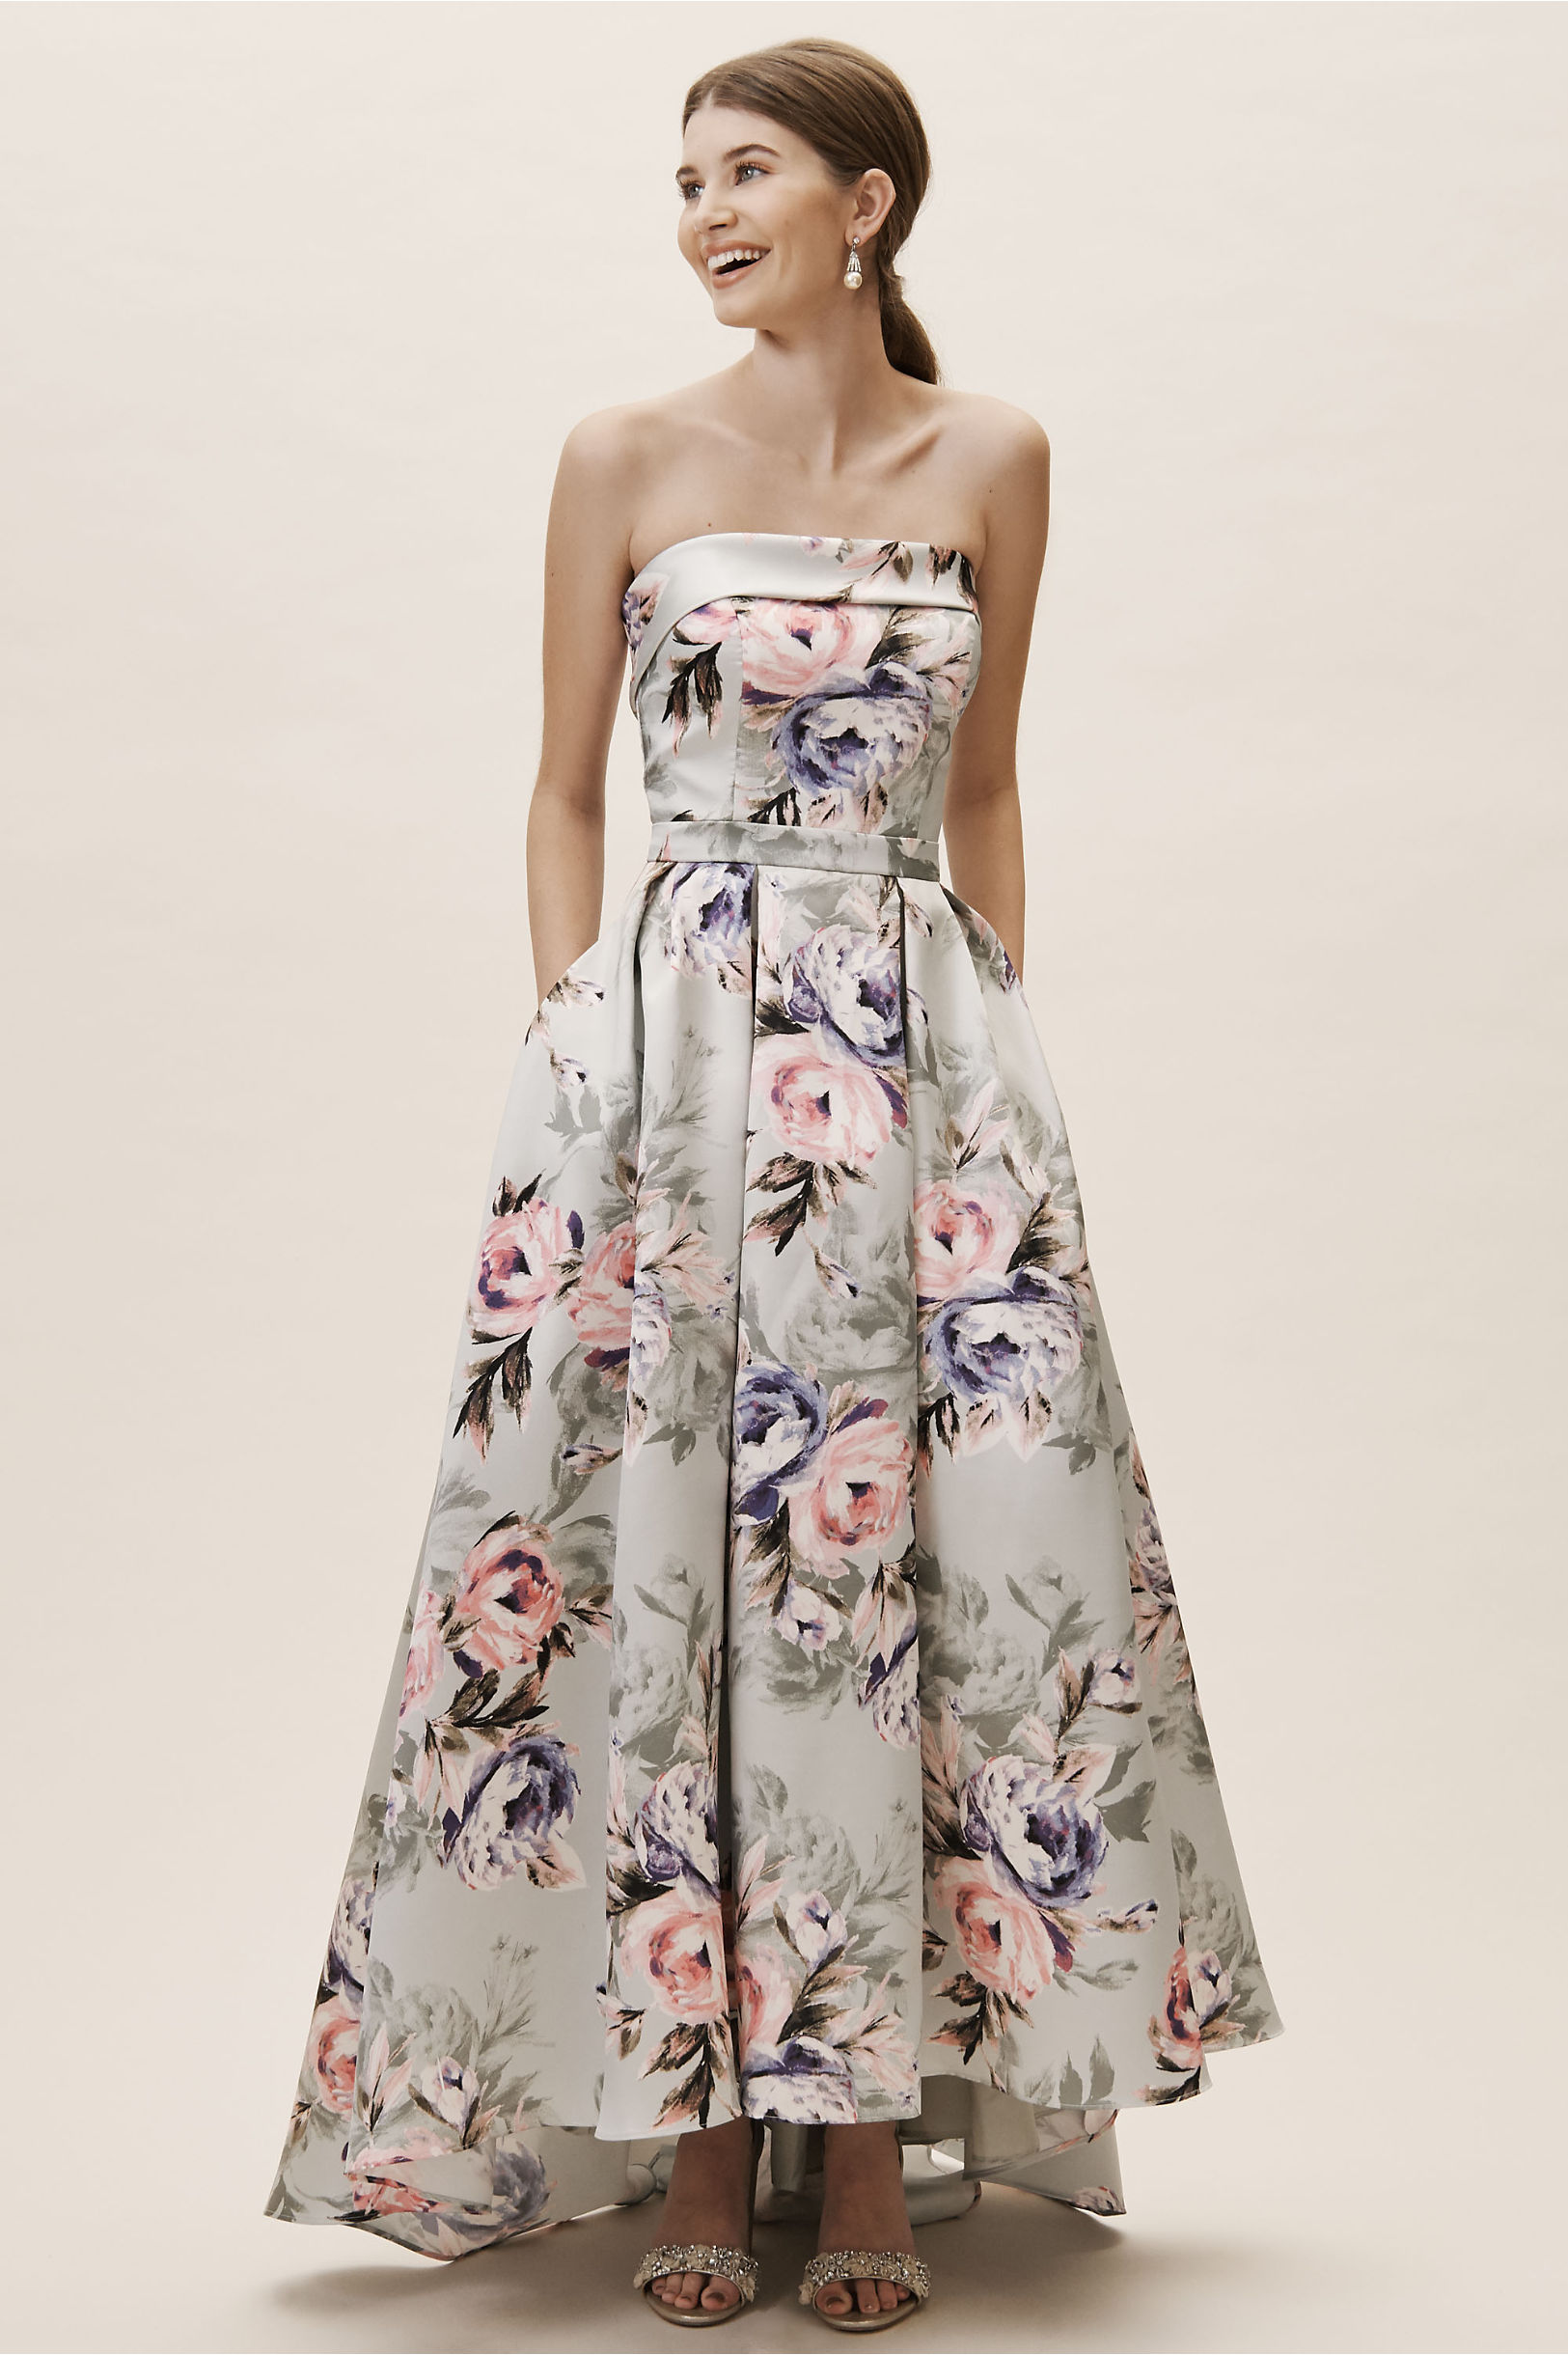 dulcie dress gray peach lavender bold floral gown 2019 spring bhldn wedding collection